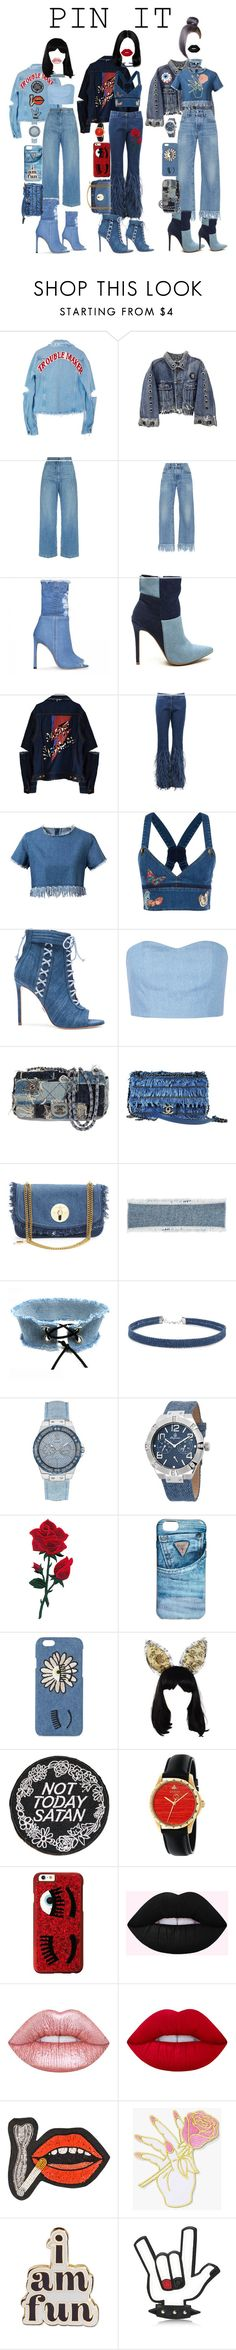 """""""Denim Apocalypse"""" by sjaade ❤ liked on Polyvore featuring High Heels Suicide, Rachel Comey, 3x1, Michael Kors, Chicnova Fashion, Valentino, Oscar Tiye, Julien David, Chanel and See by Chloé"""